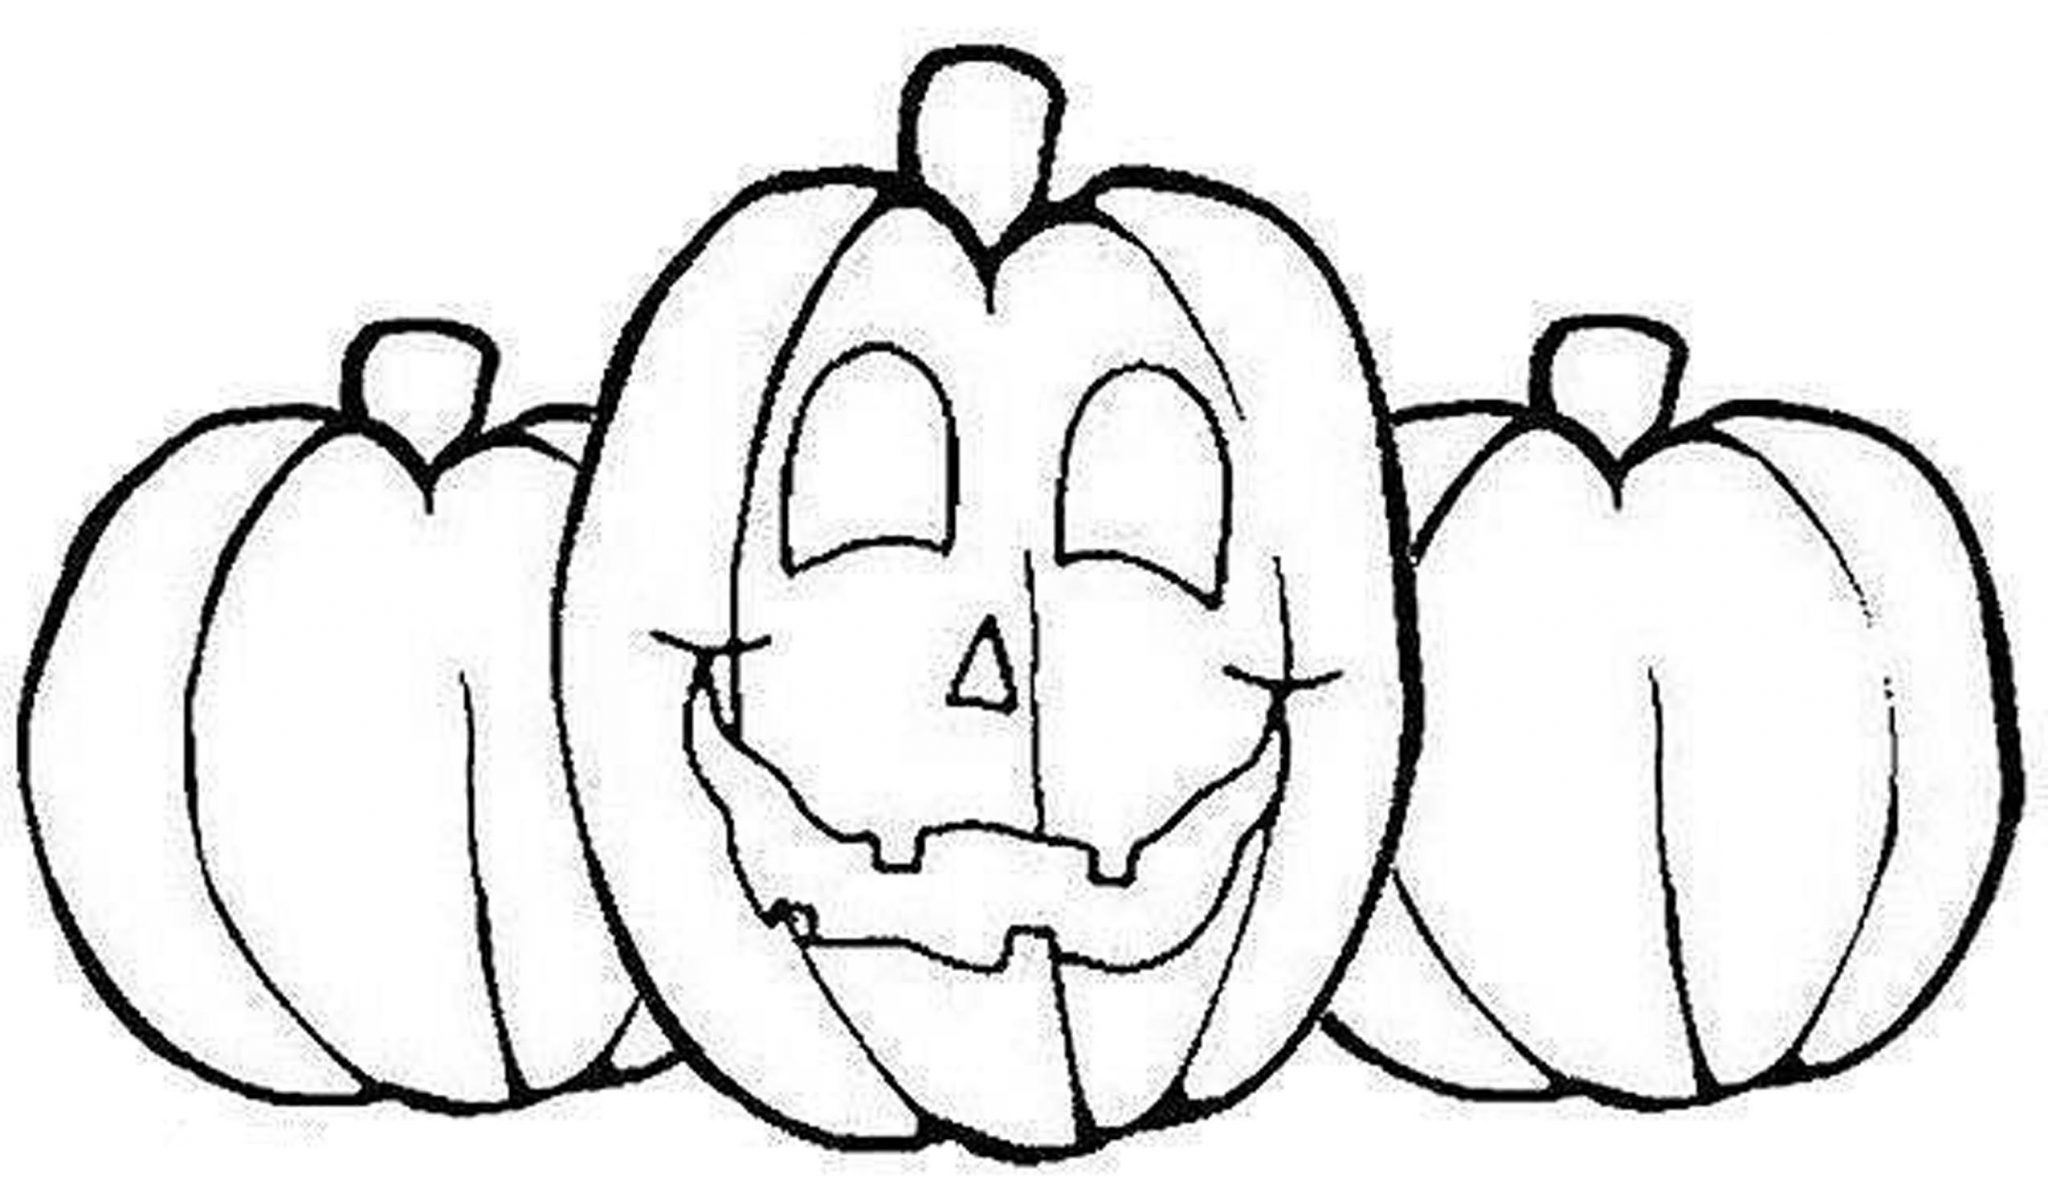 pumpking coloring pages pumpkin coloring pages getcoloringpagescom pumpking pages coloring